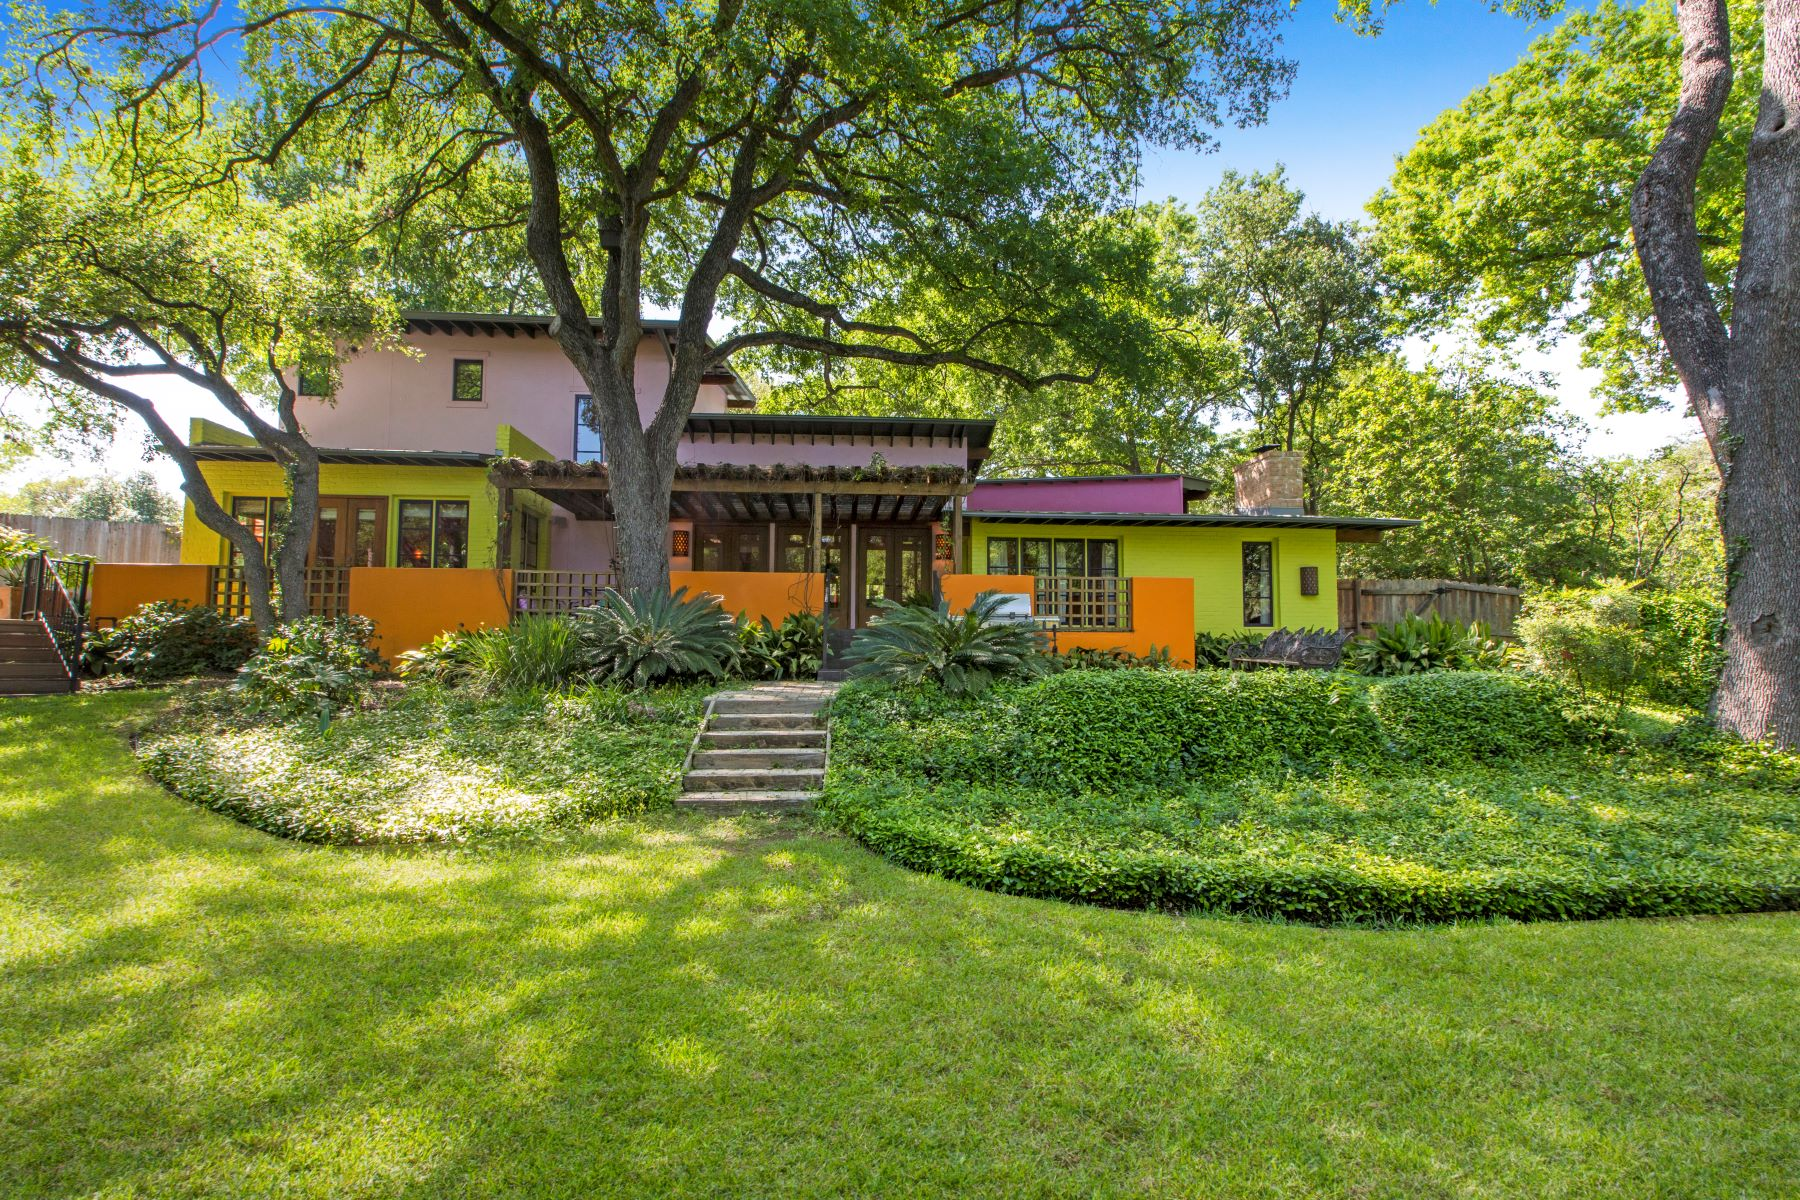 Single Family Homes для того Продажа на Modernist Hacienda in Terrell Hills 129 Newbury Terrace, San Antonio, Техас 78209 Соединенные Штаты